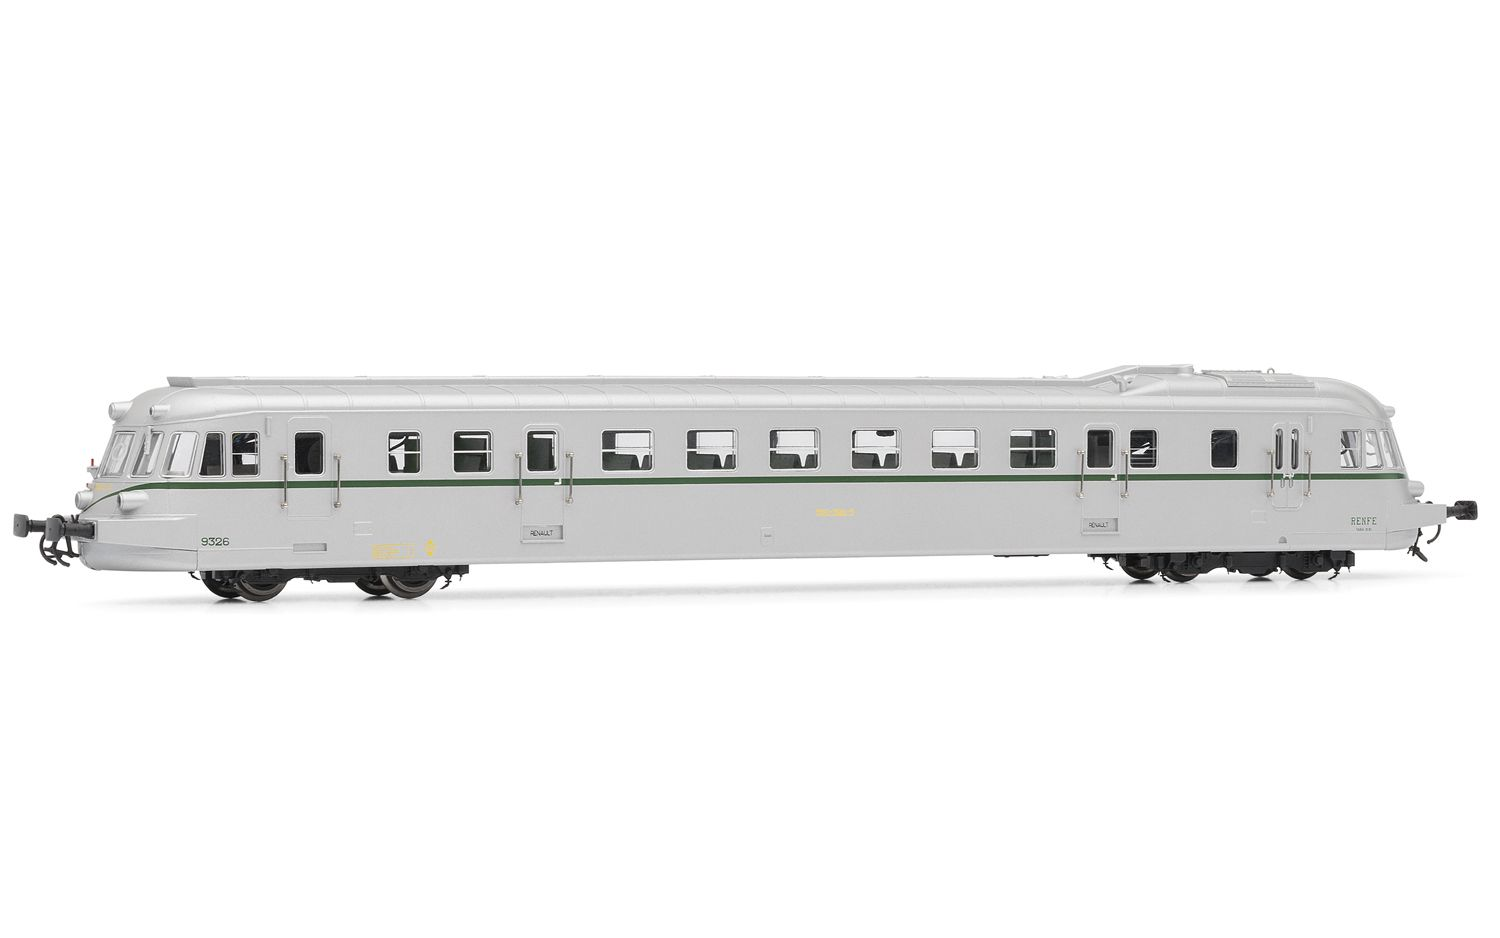 Picture Gallery for Electrotren E2144D Diesel railcar ABJ 7 RENFE 9326 cafe